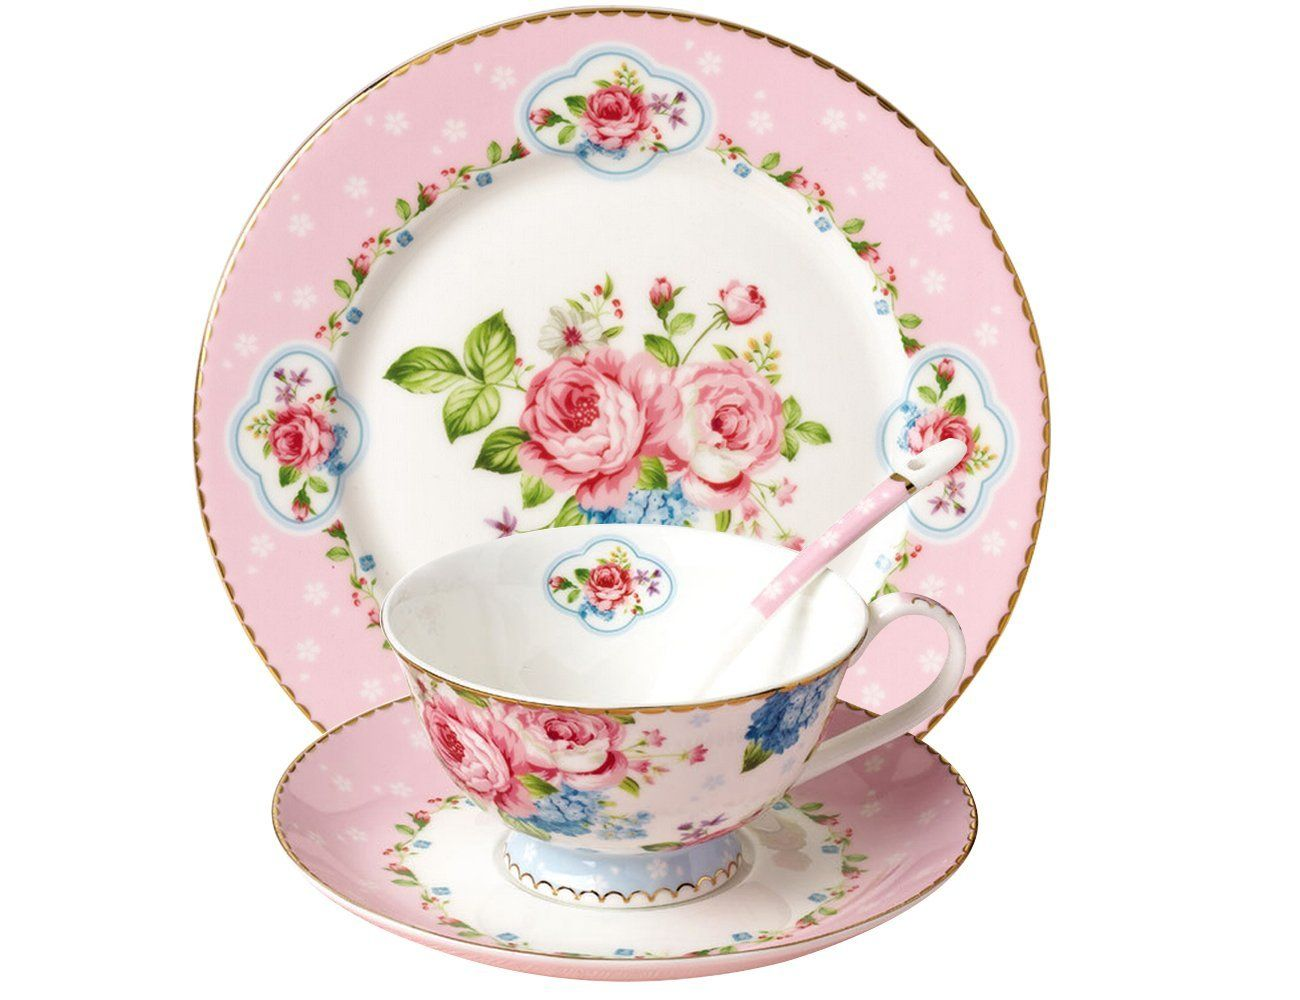 Amazon.com | JSAron Romantic Rose Series Porcelain 4-Piece Teacup Saucer · Dessert PlatesPlate SetsTea ...  sc 1 st  Pinterest & Amazon.com | JSAron Romantic Rose Series Porcelain 4-Piece Teacup ...